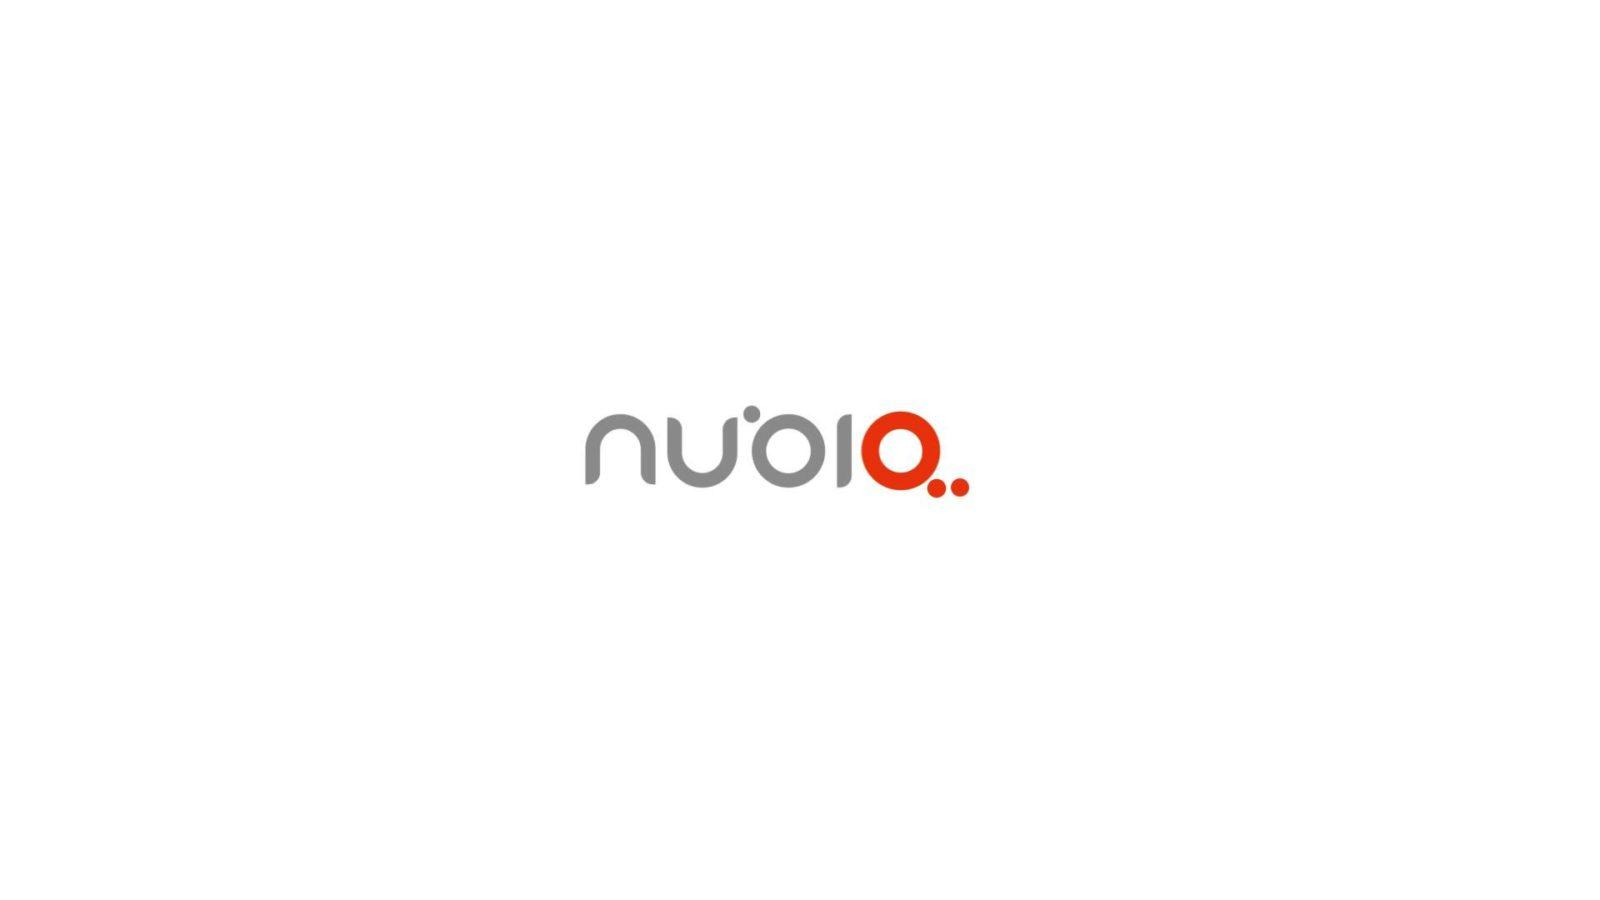 In arrivo un display Full screen 3.0 per Nubia Z18